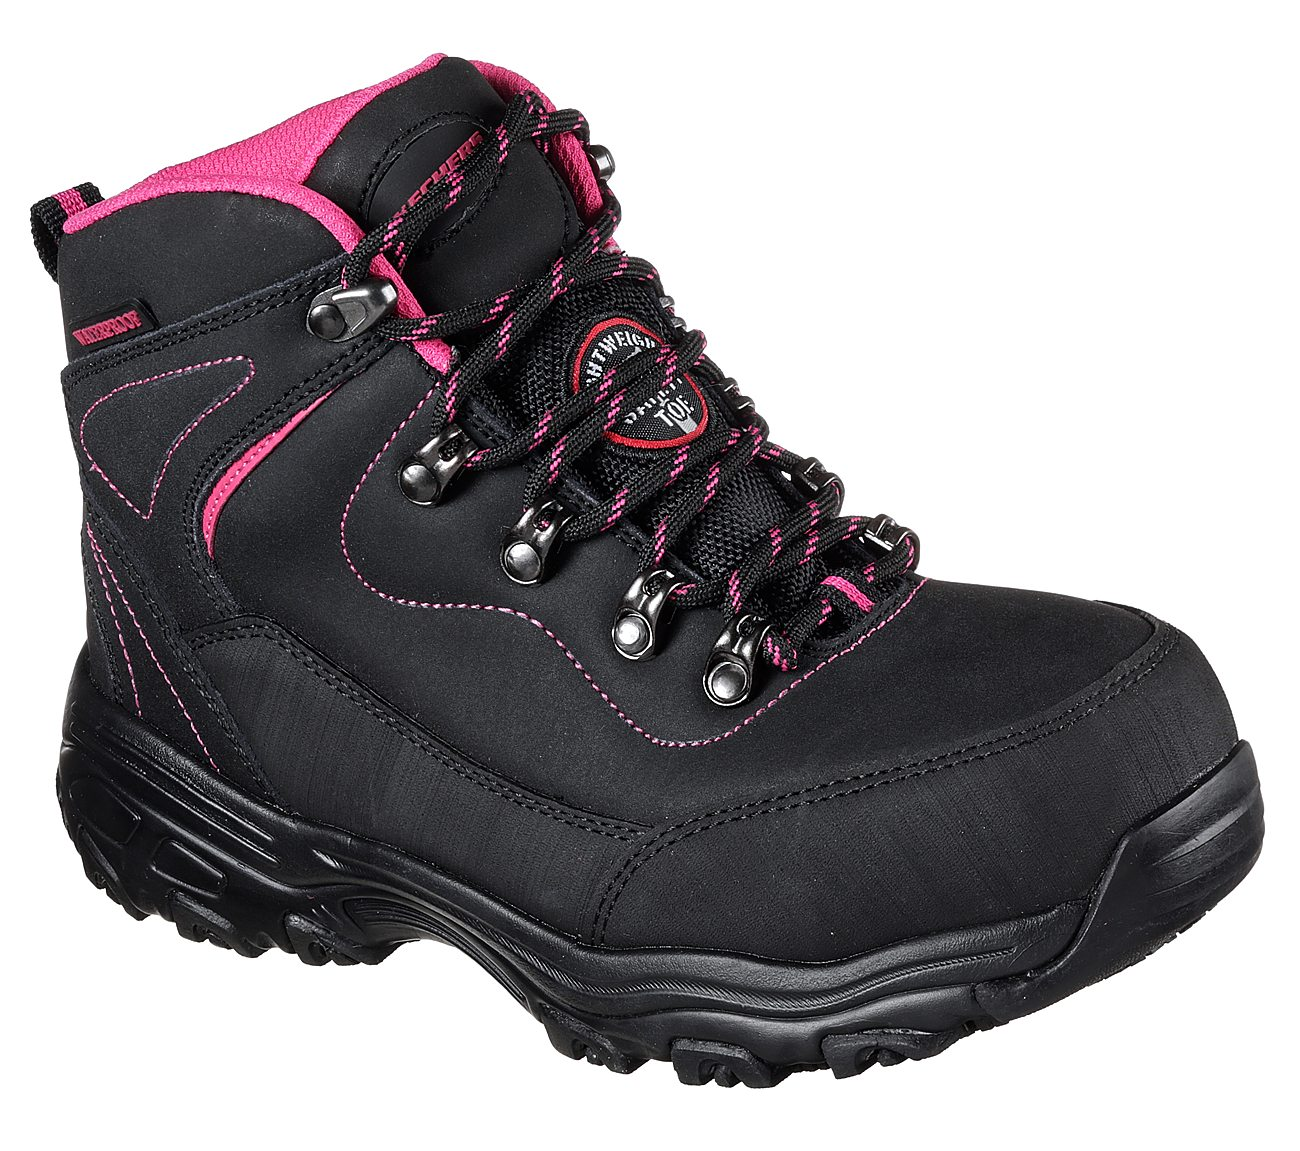 f14cd63934a7 Buy SKECHERS Work  D Lites SR - Amasa Alloy Toe Work Shoes only  92.00